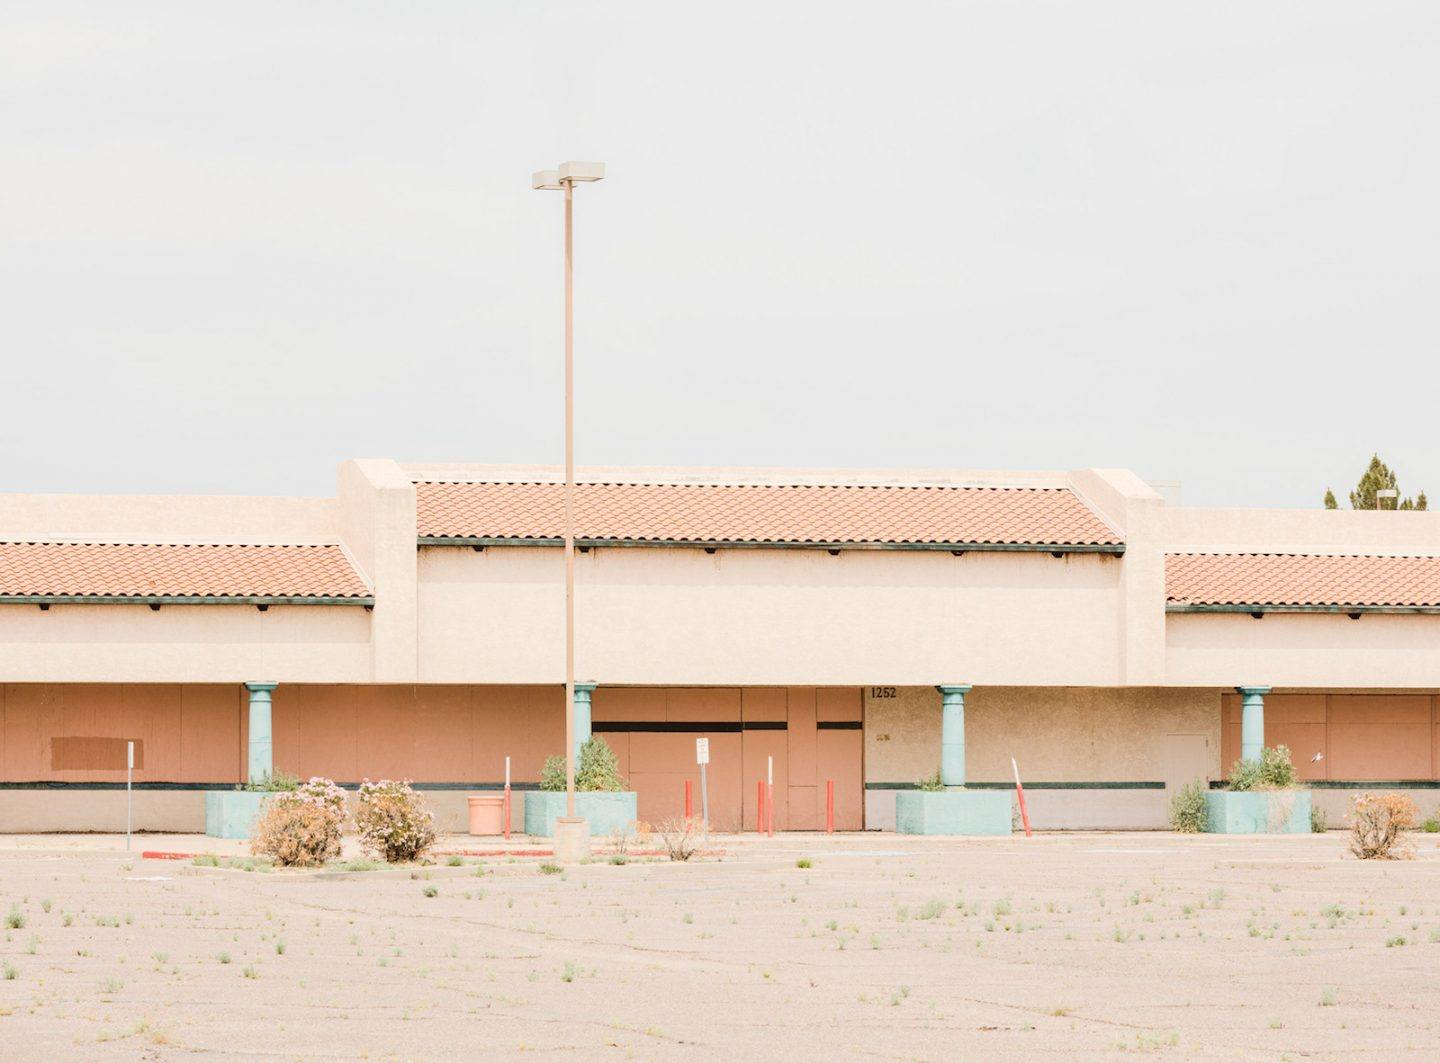 iGNANT-Photography-Jesse-Rieser-The-Retail-Apocalypse-009